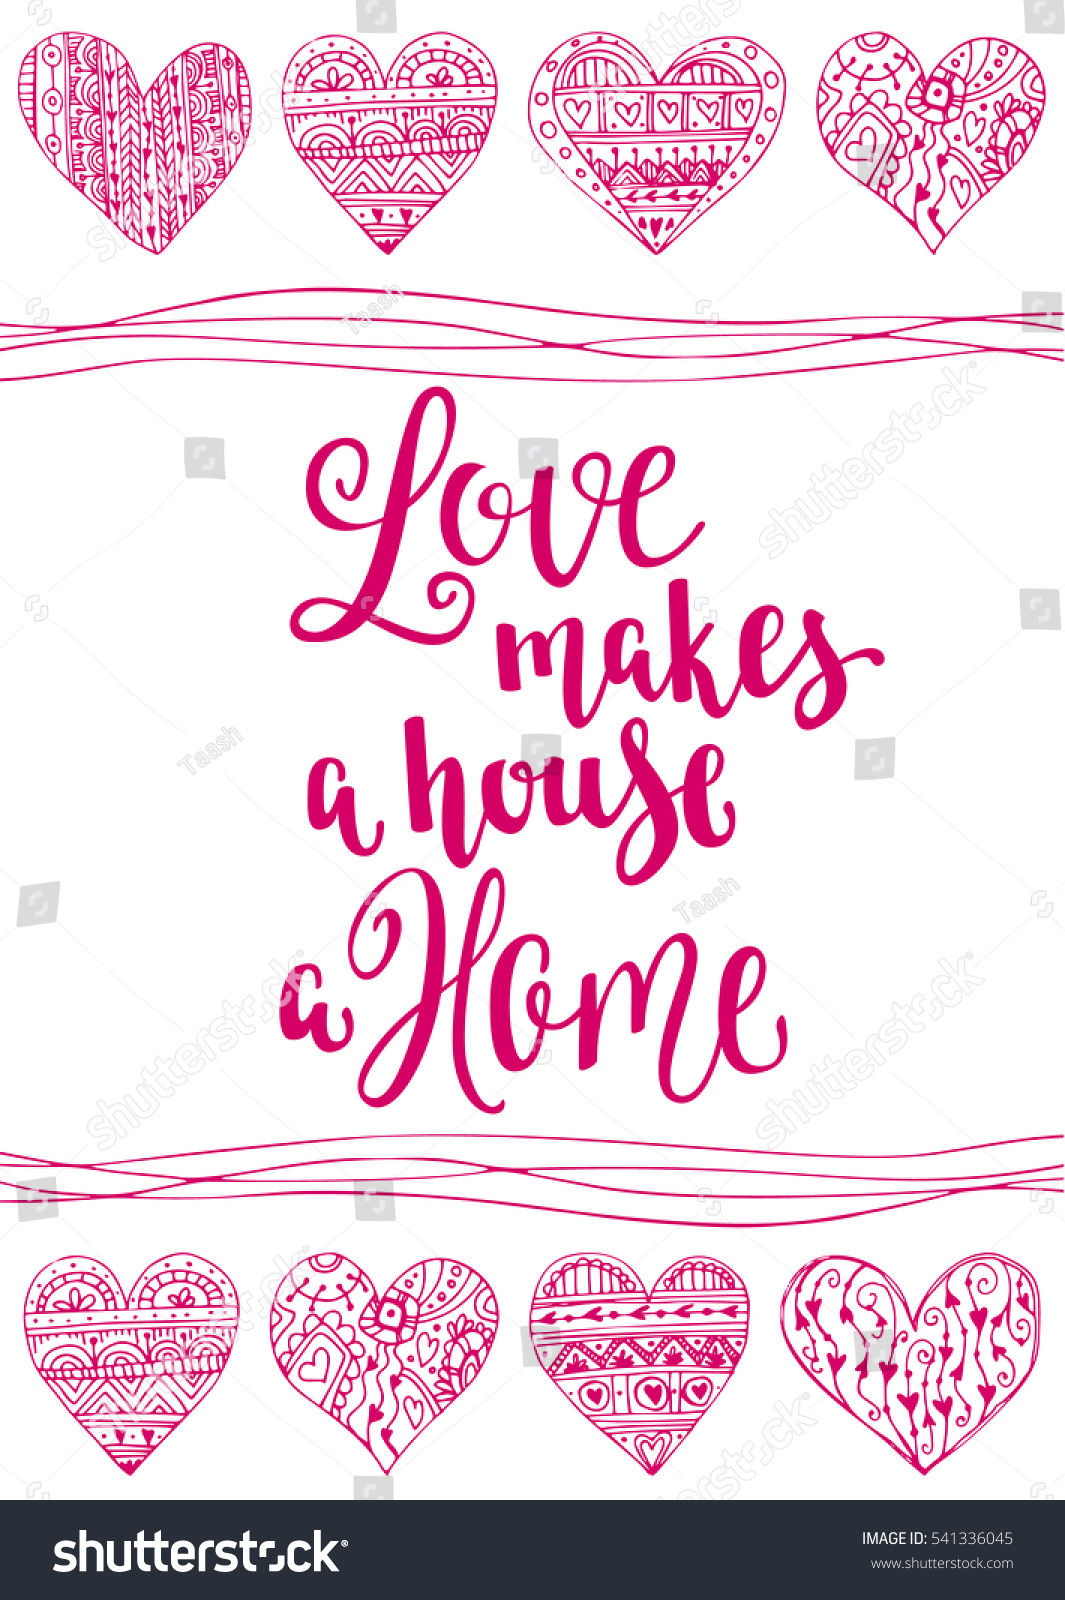 valentines day quote romantic saying posters stock vector 541336045 shutterstock